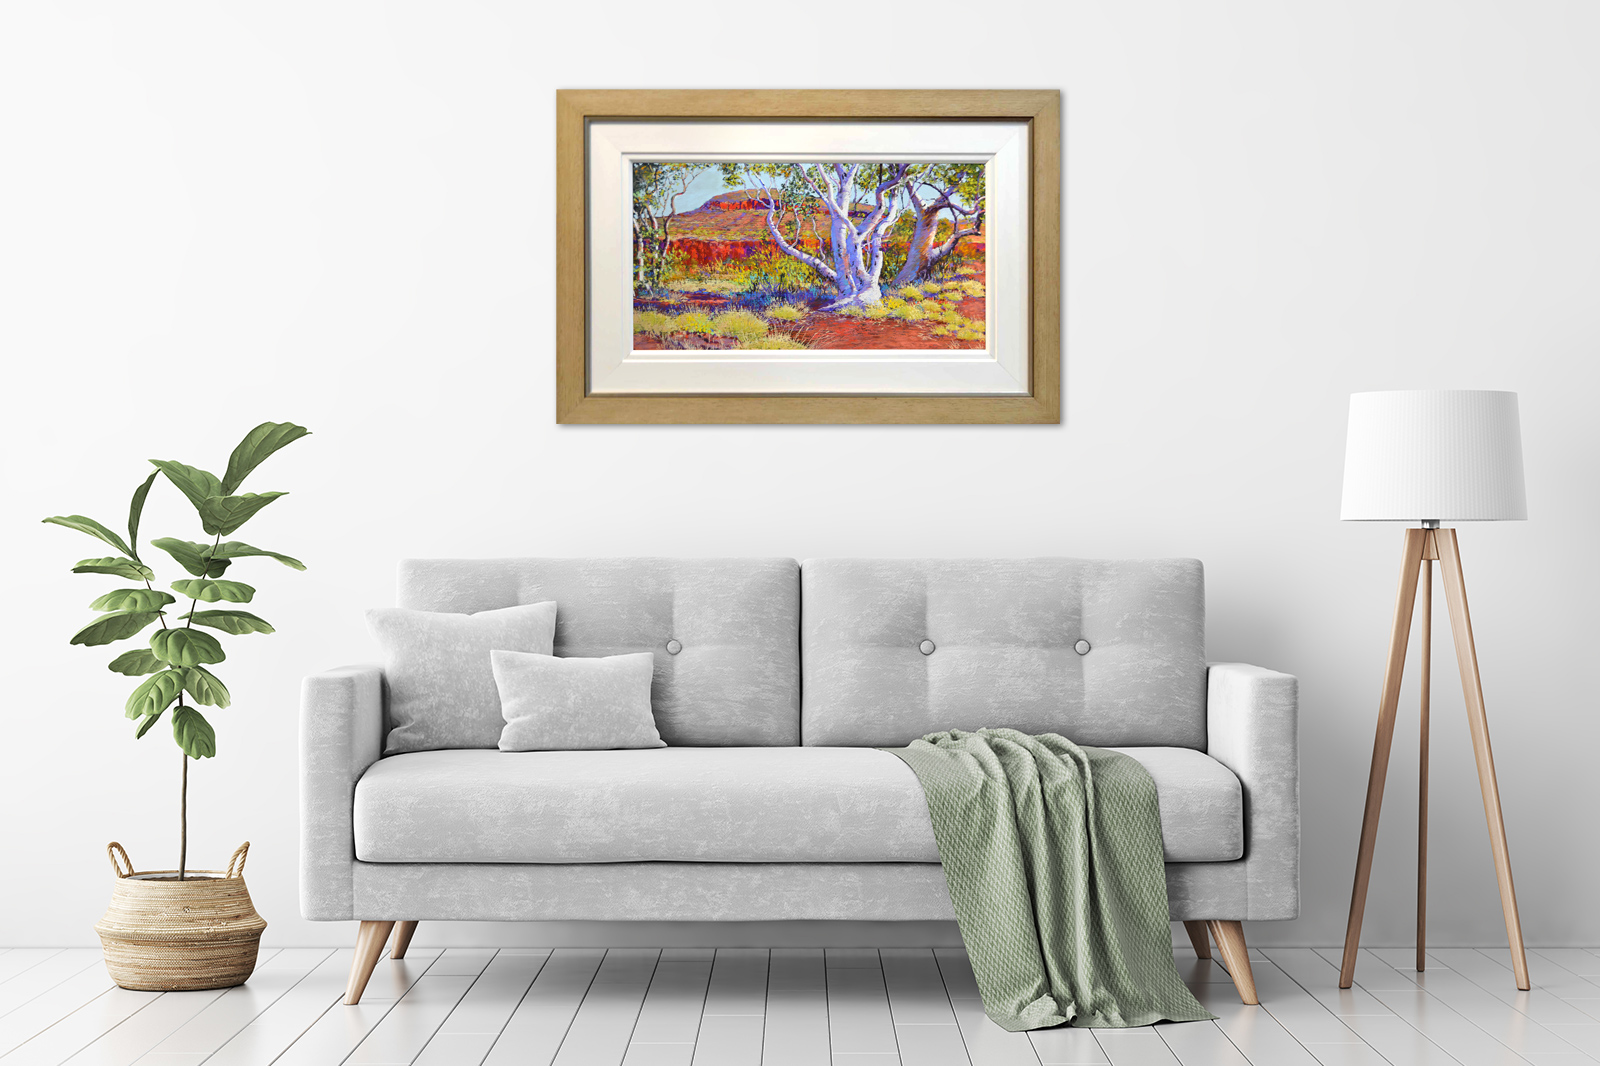 Shirley Fisher - 'Dales Gorge Snappy Gums' in a room